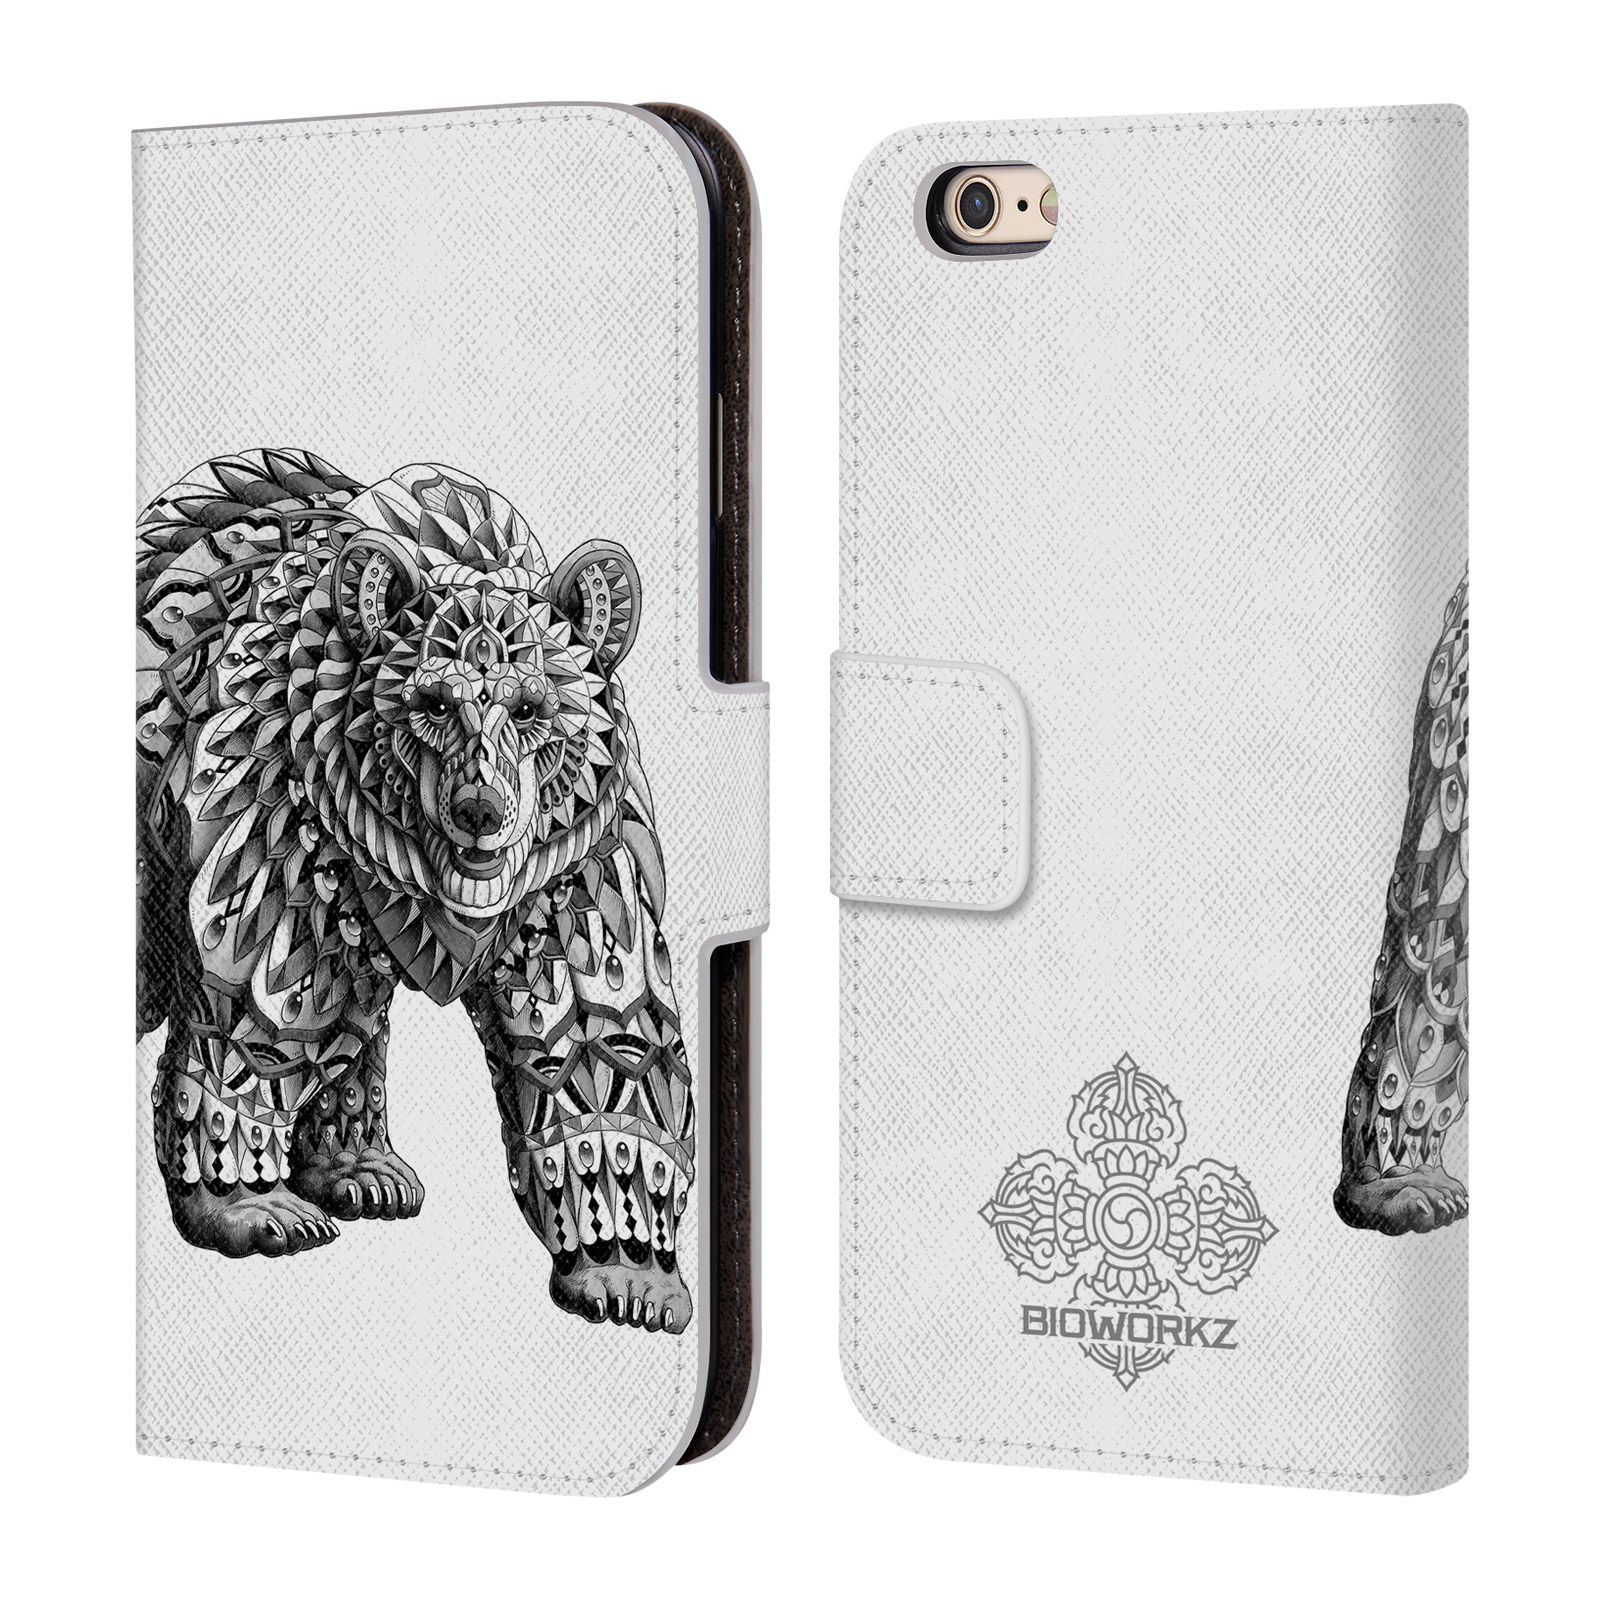 OFFICIAL BIOWORKZ WILDLIFE LEATHER BOOK WALLET CASE FOR APPLE iPHONE PHONES